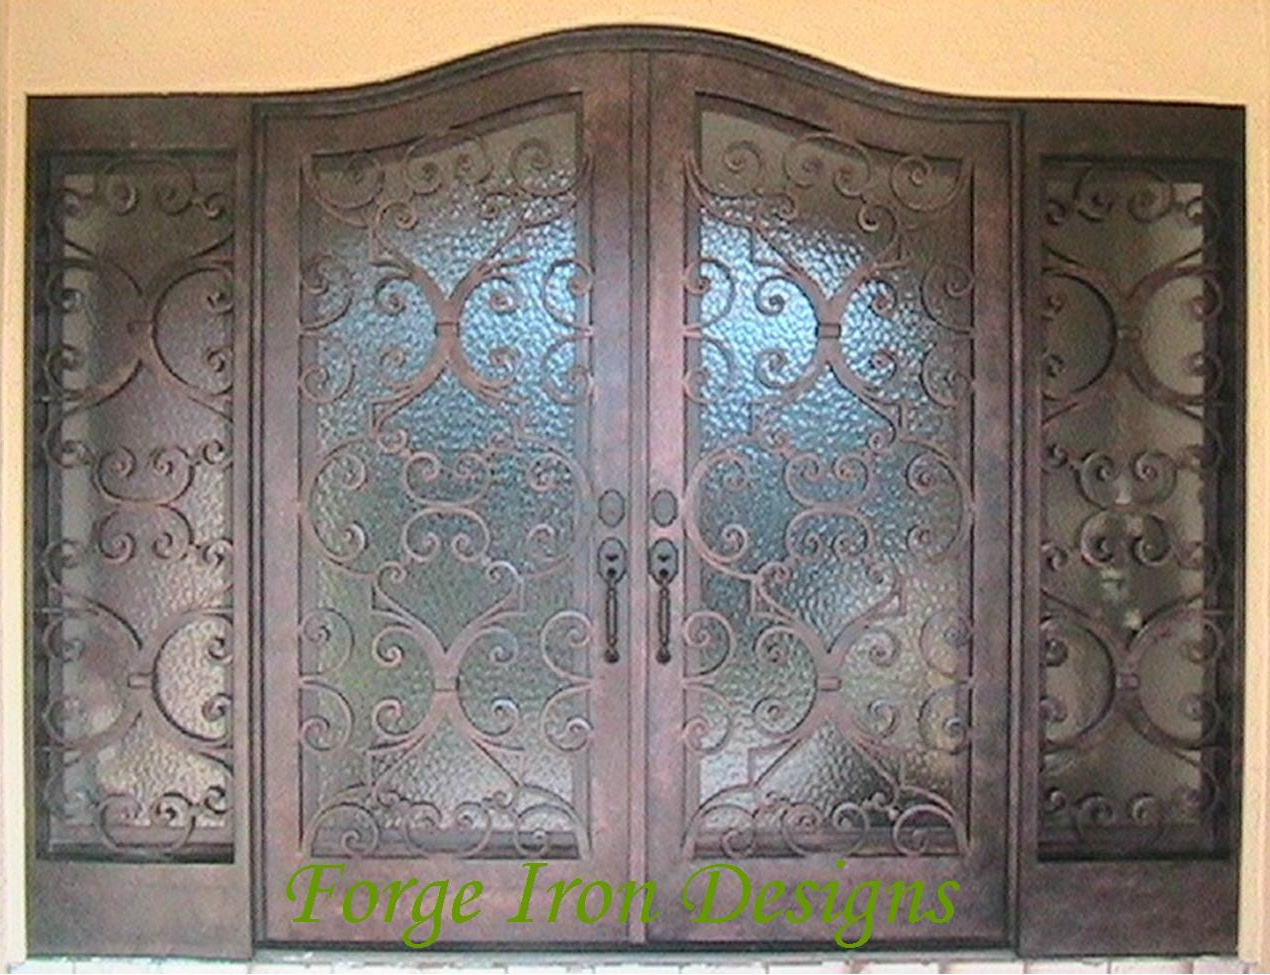 975 #B46F17 Wrought Iron Doors Wine Cellar Doors Forge Iron Products AAW Wood  pic Wood Wrought Iron Doors 43111270